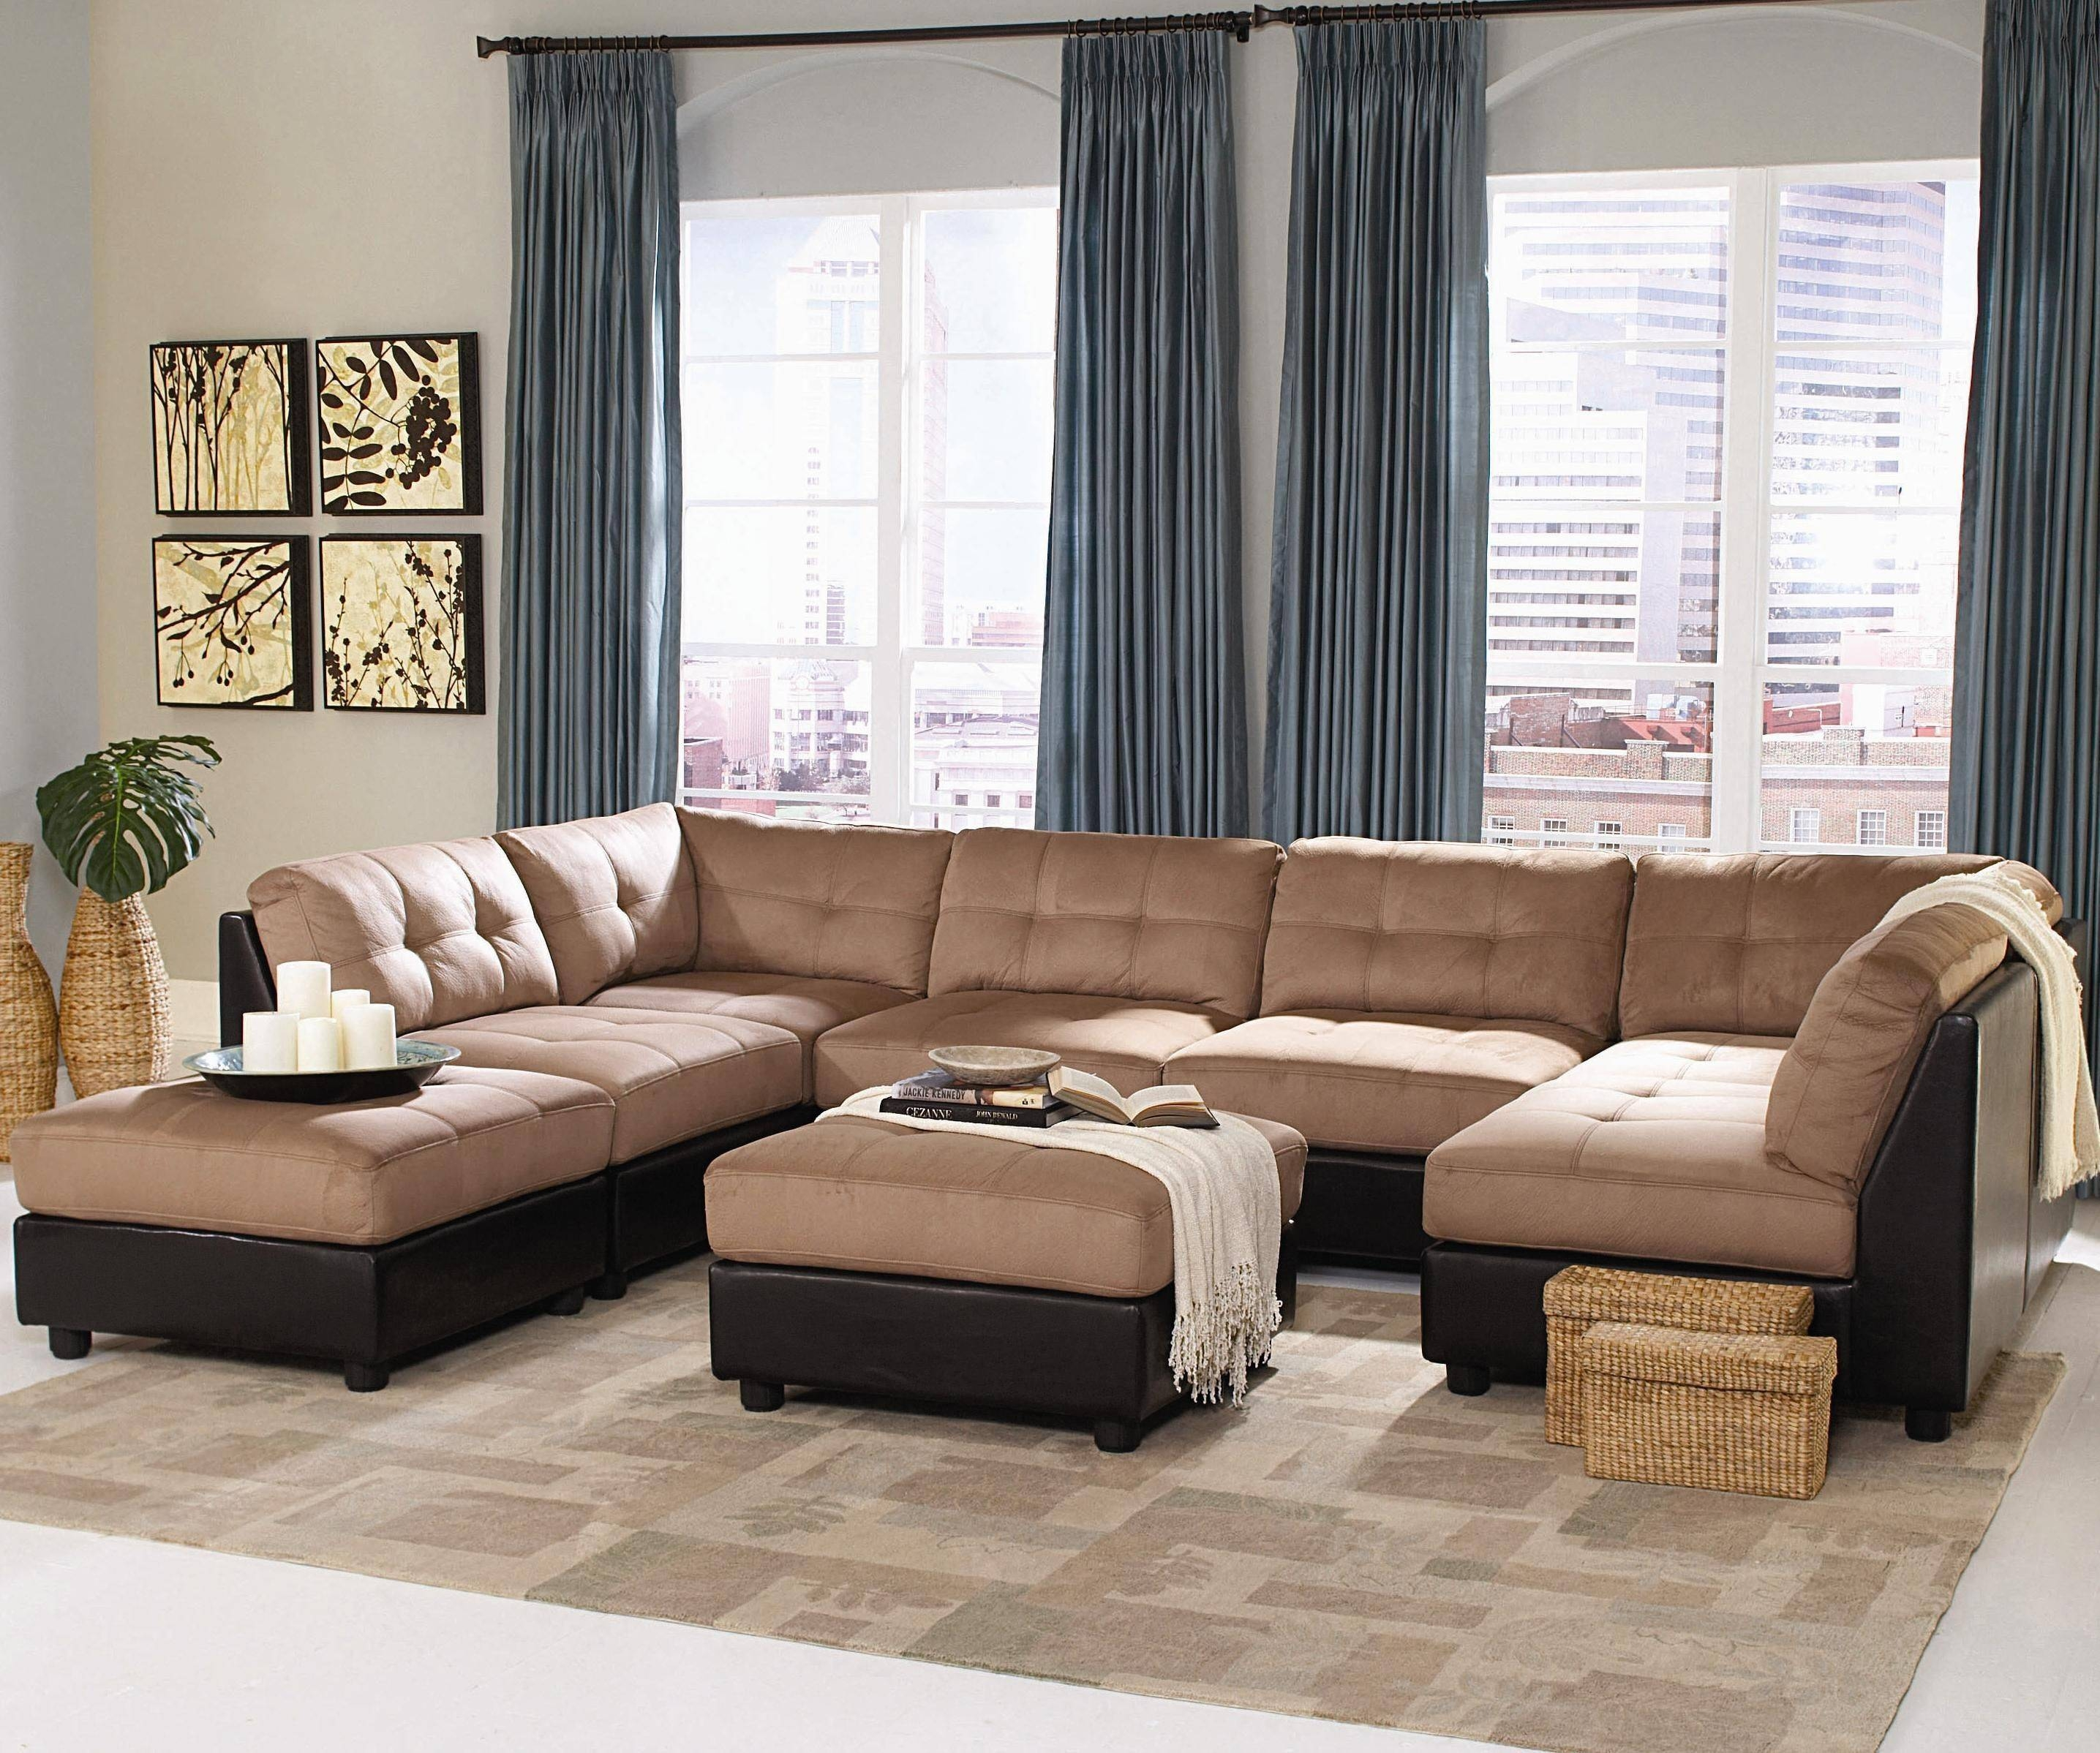 30 Best Collection of Modern Microfiber Sectional Sofa